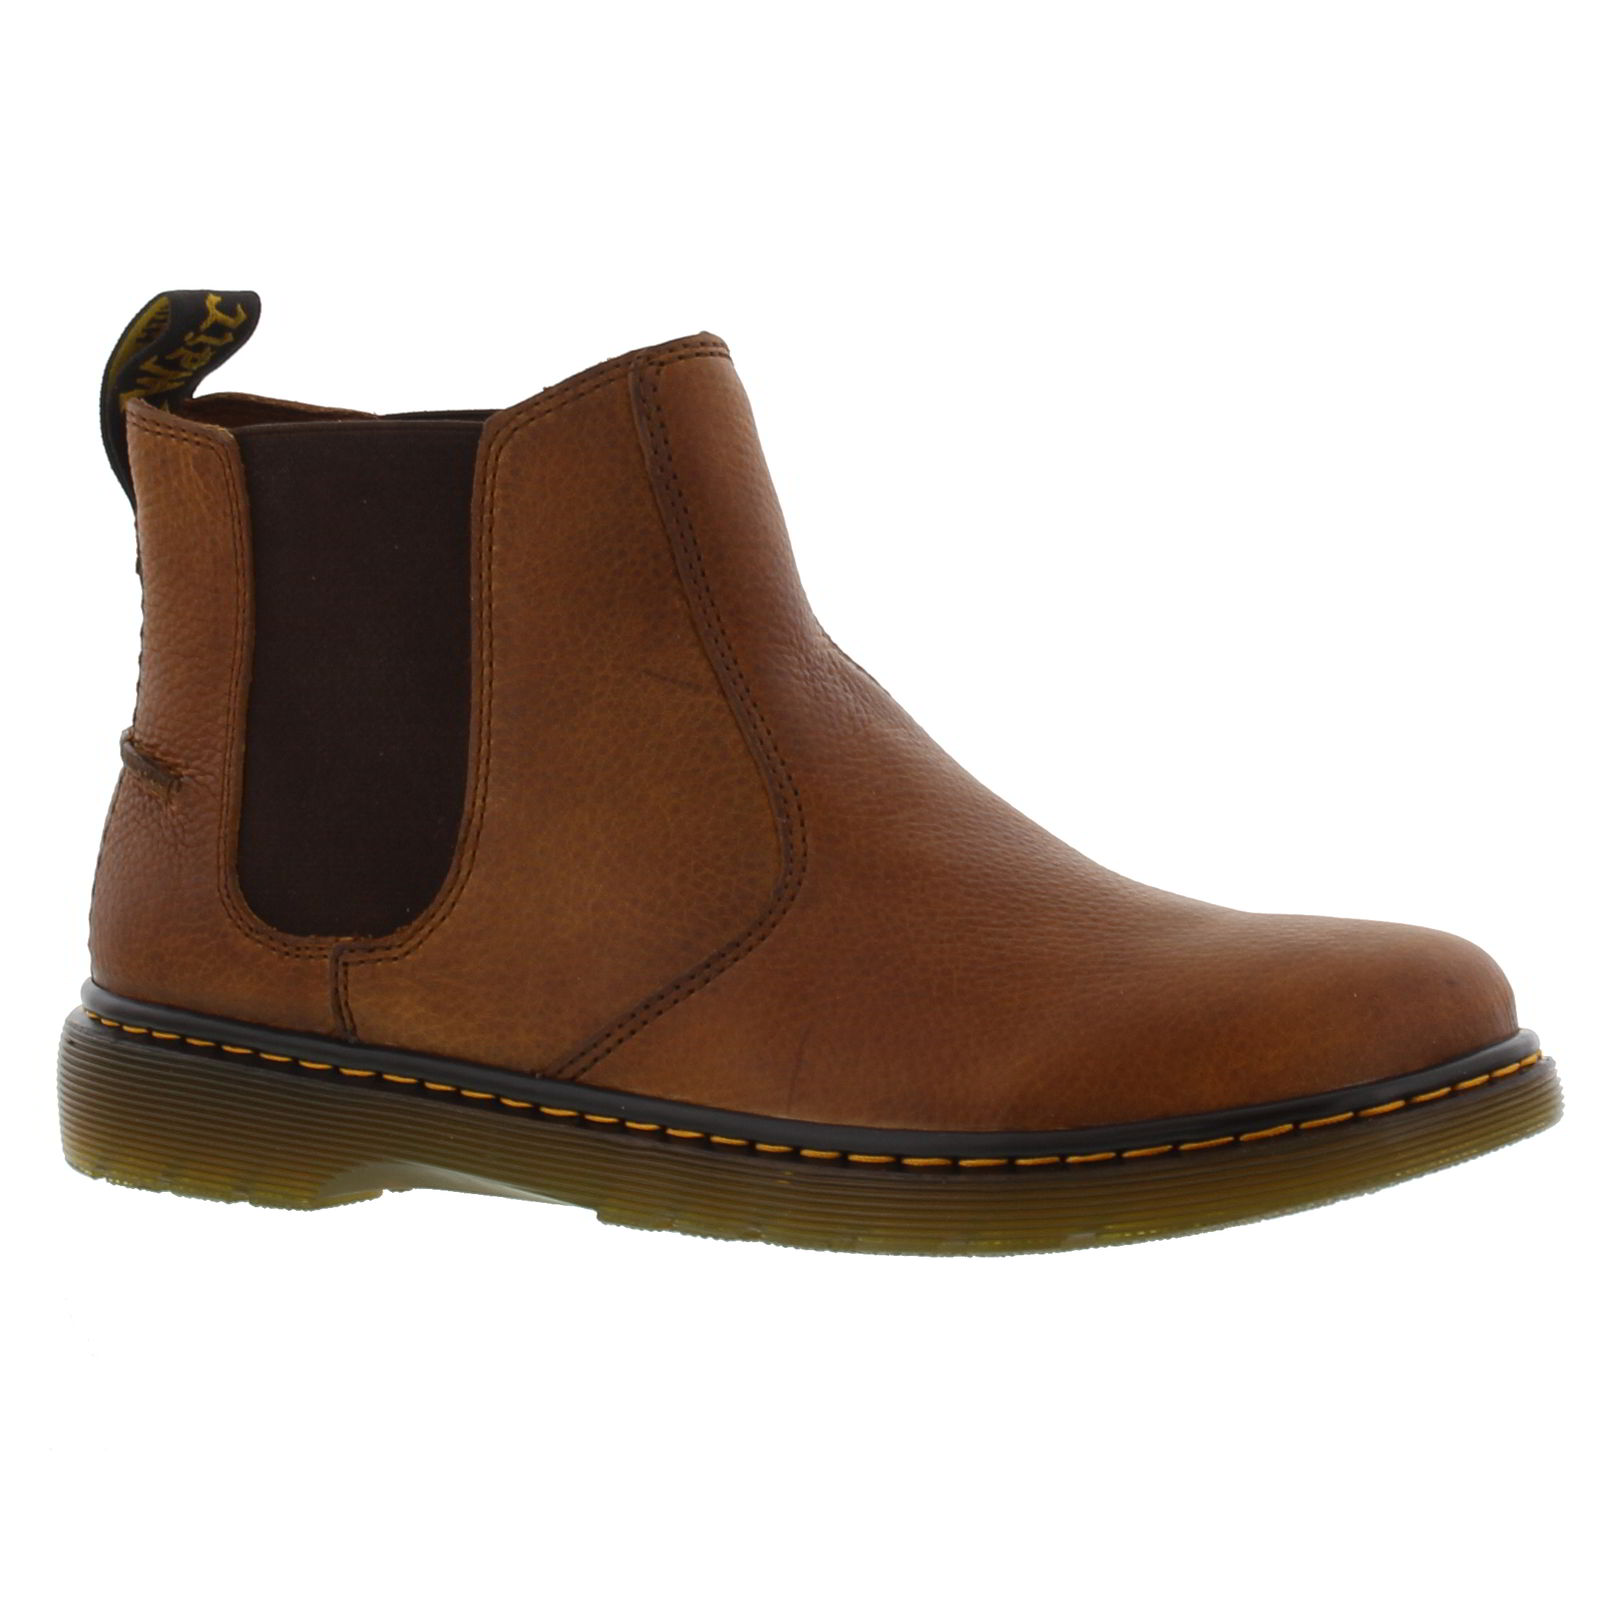 The Shoe Box Black Earth Mens Boots